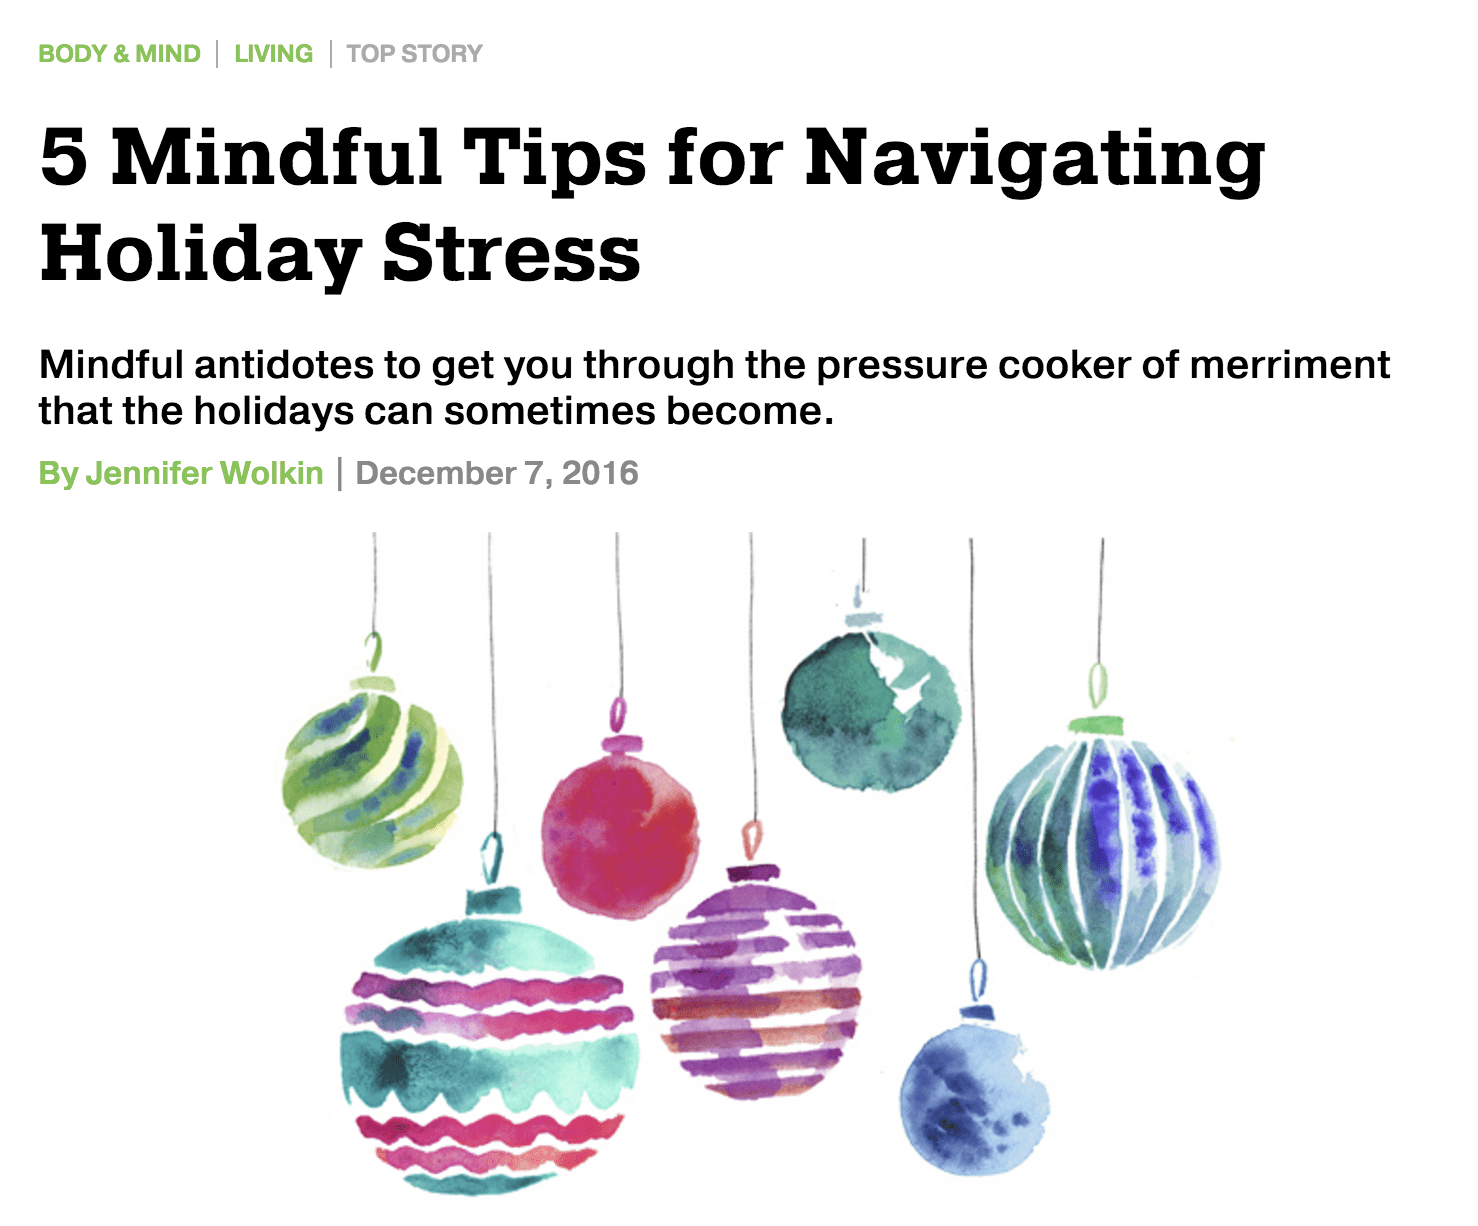 Repost: 5 Mindful Tips for Navigating Holiday Stress